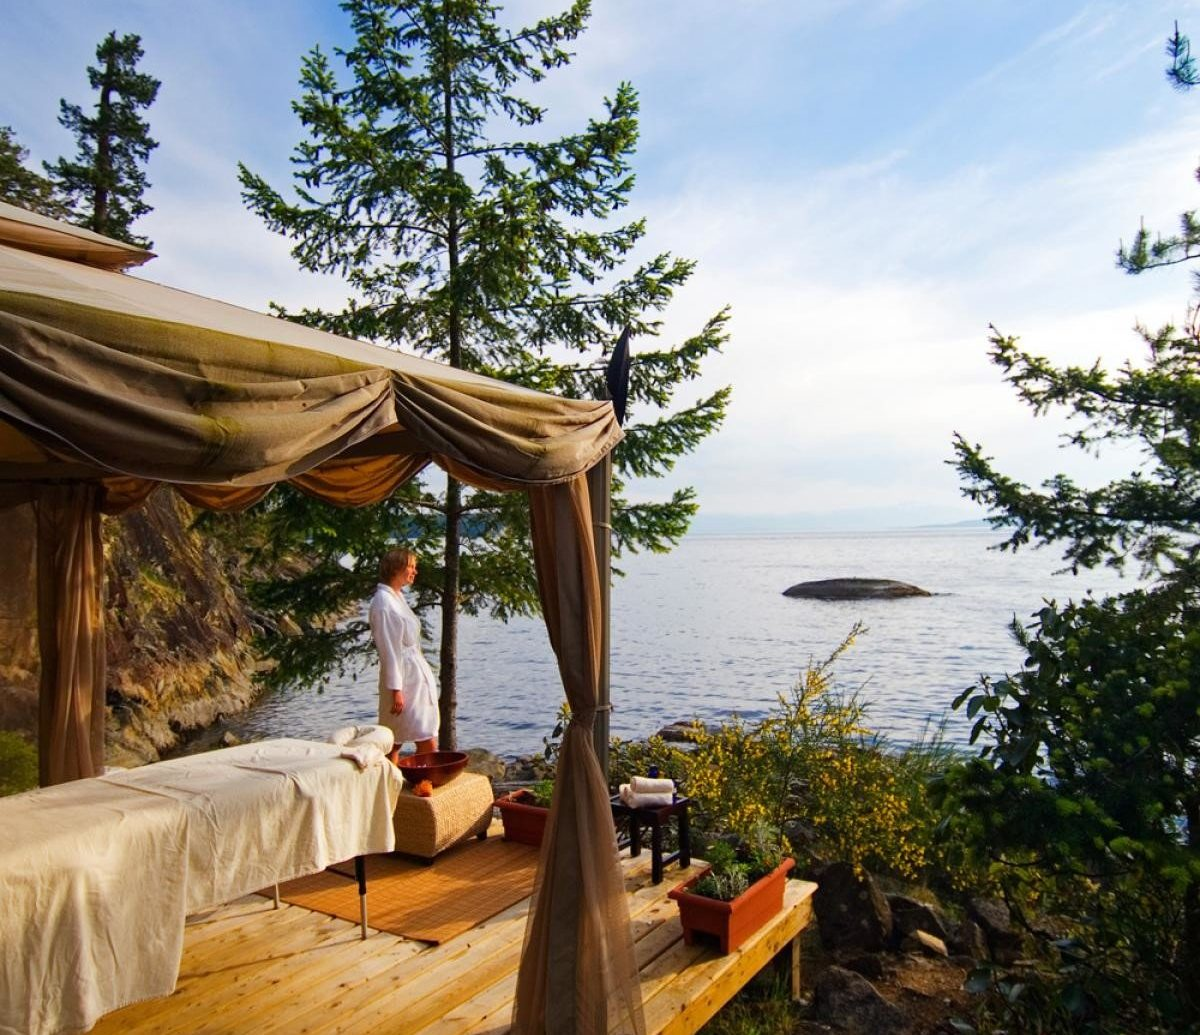 Glamping Outdoors + Adventure Trip Ideas tree outdoor sky vacation estate Resort